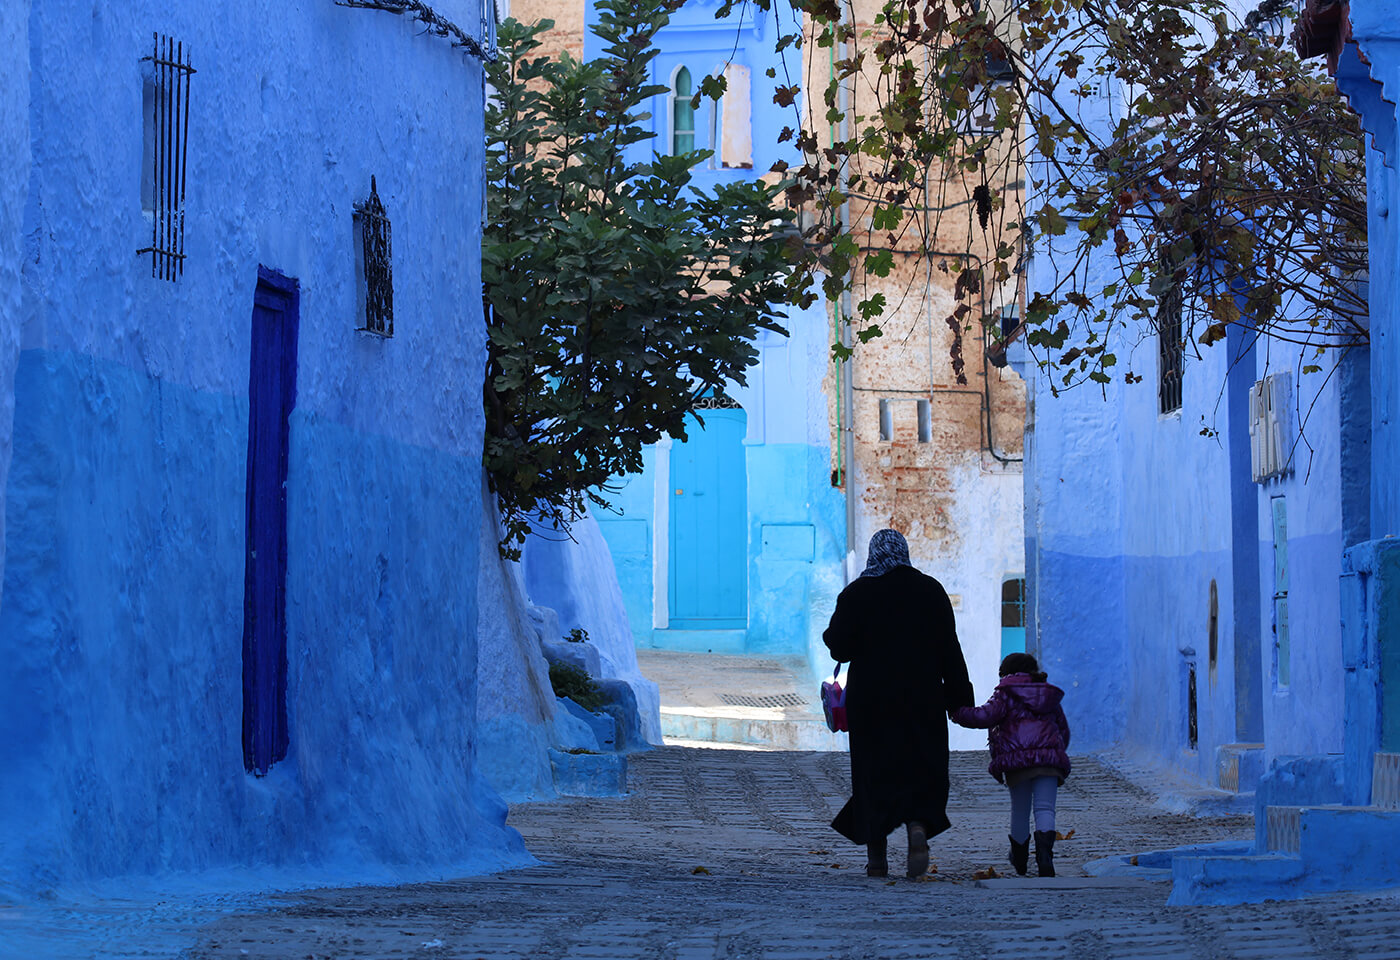 Image of blue alley taken with EOS 1500D